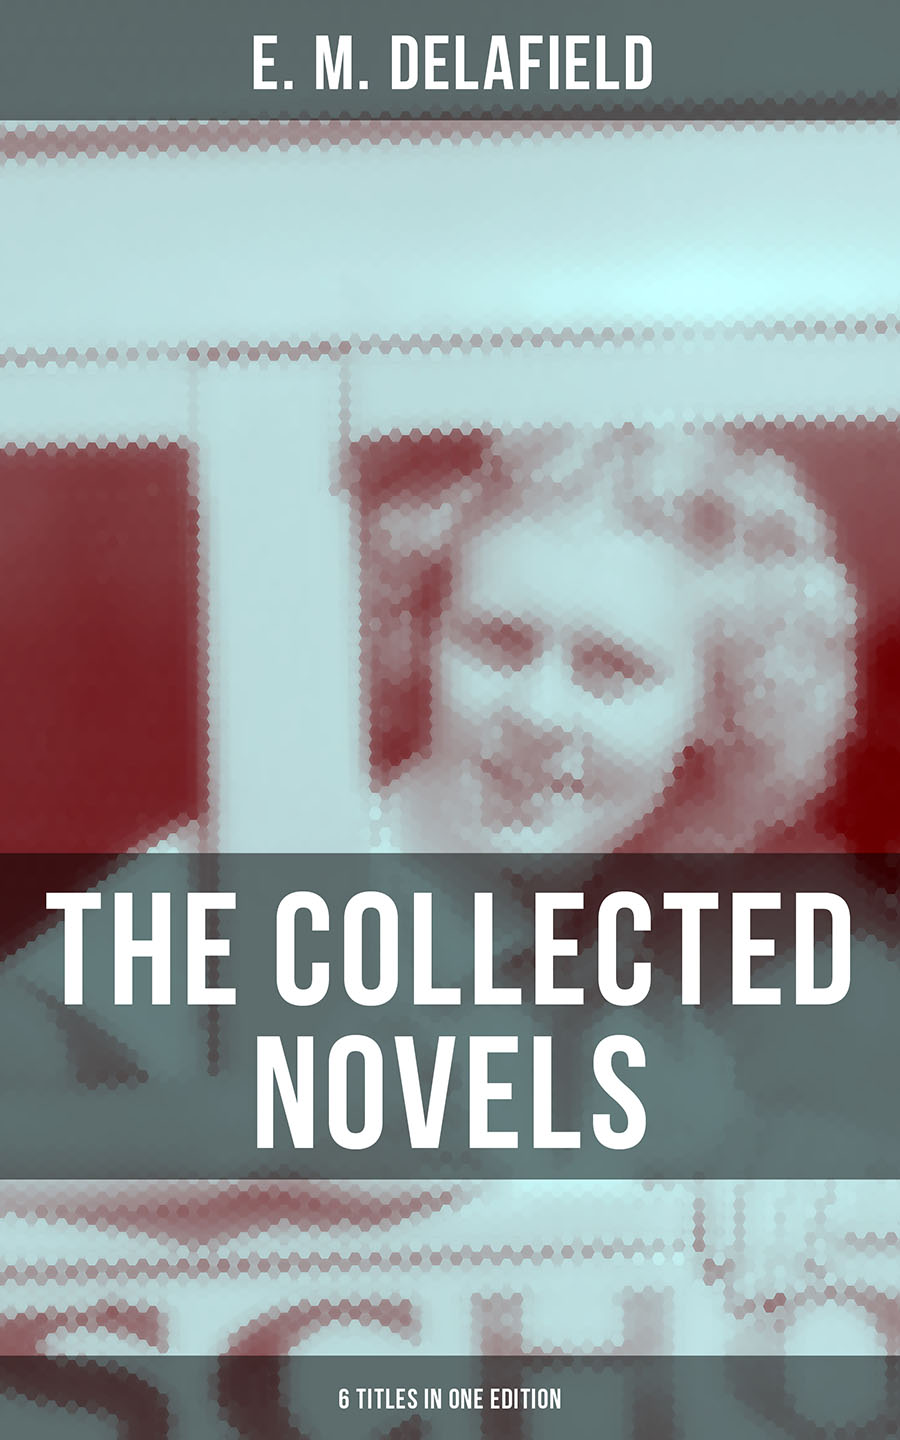 E. M. Delafield THE COLLECTED NOVELS OF E. M. DELAFIELD (6 Titles in One Edition) e m channon the cotton wool girl